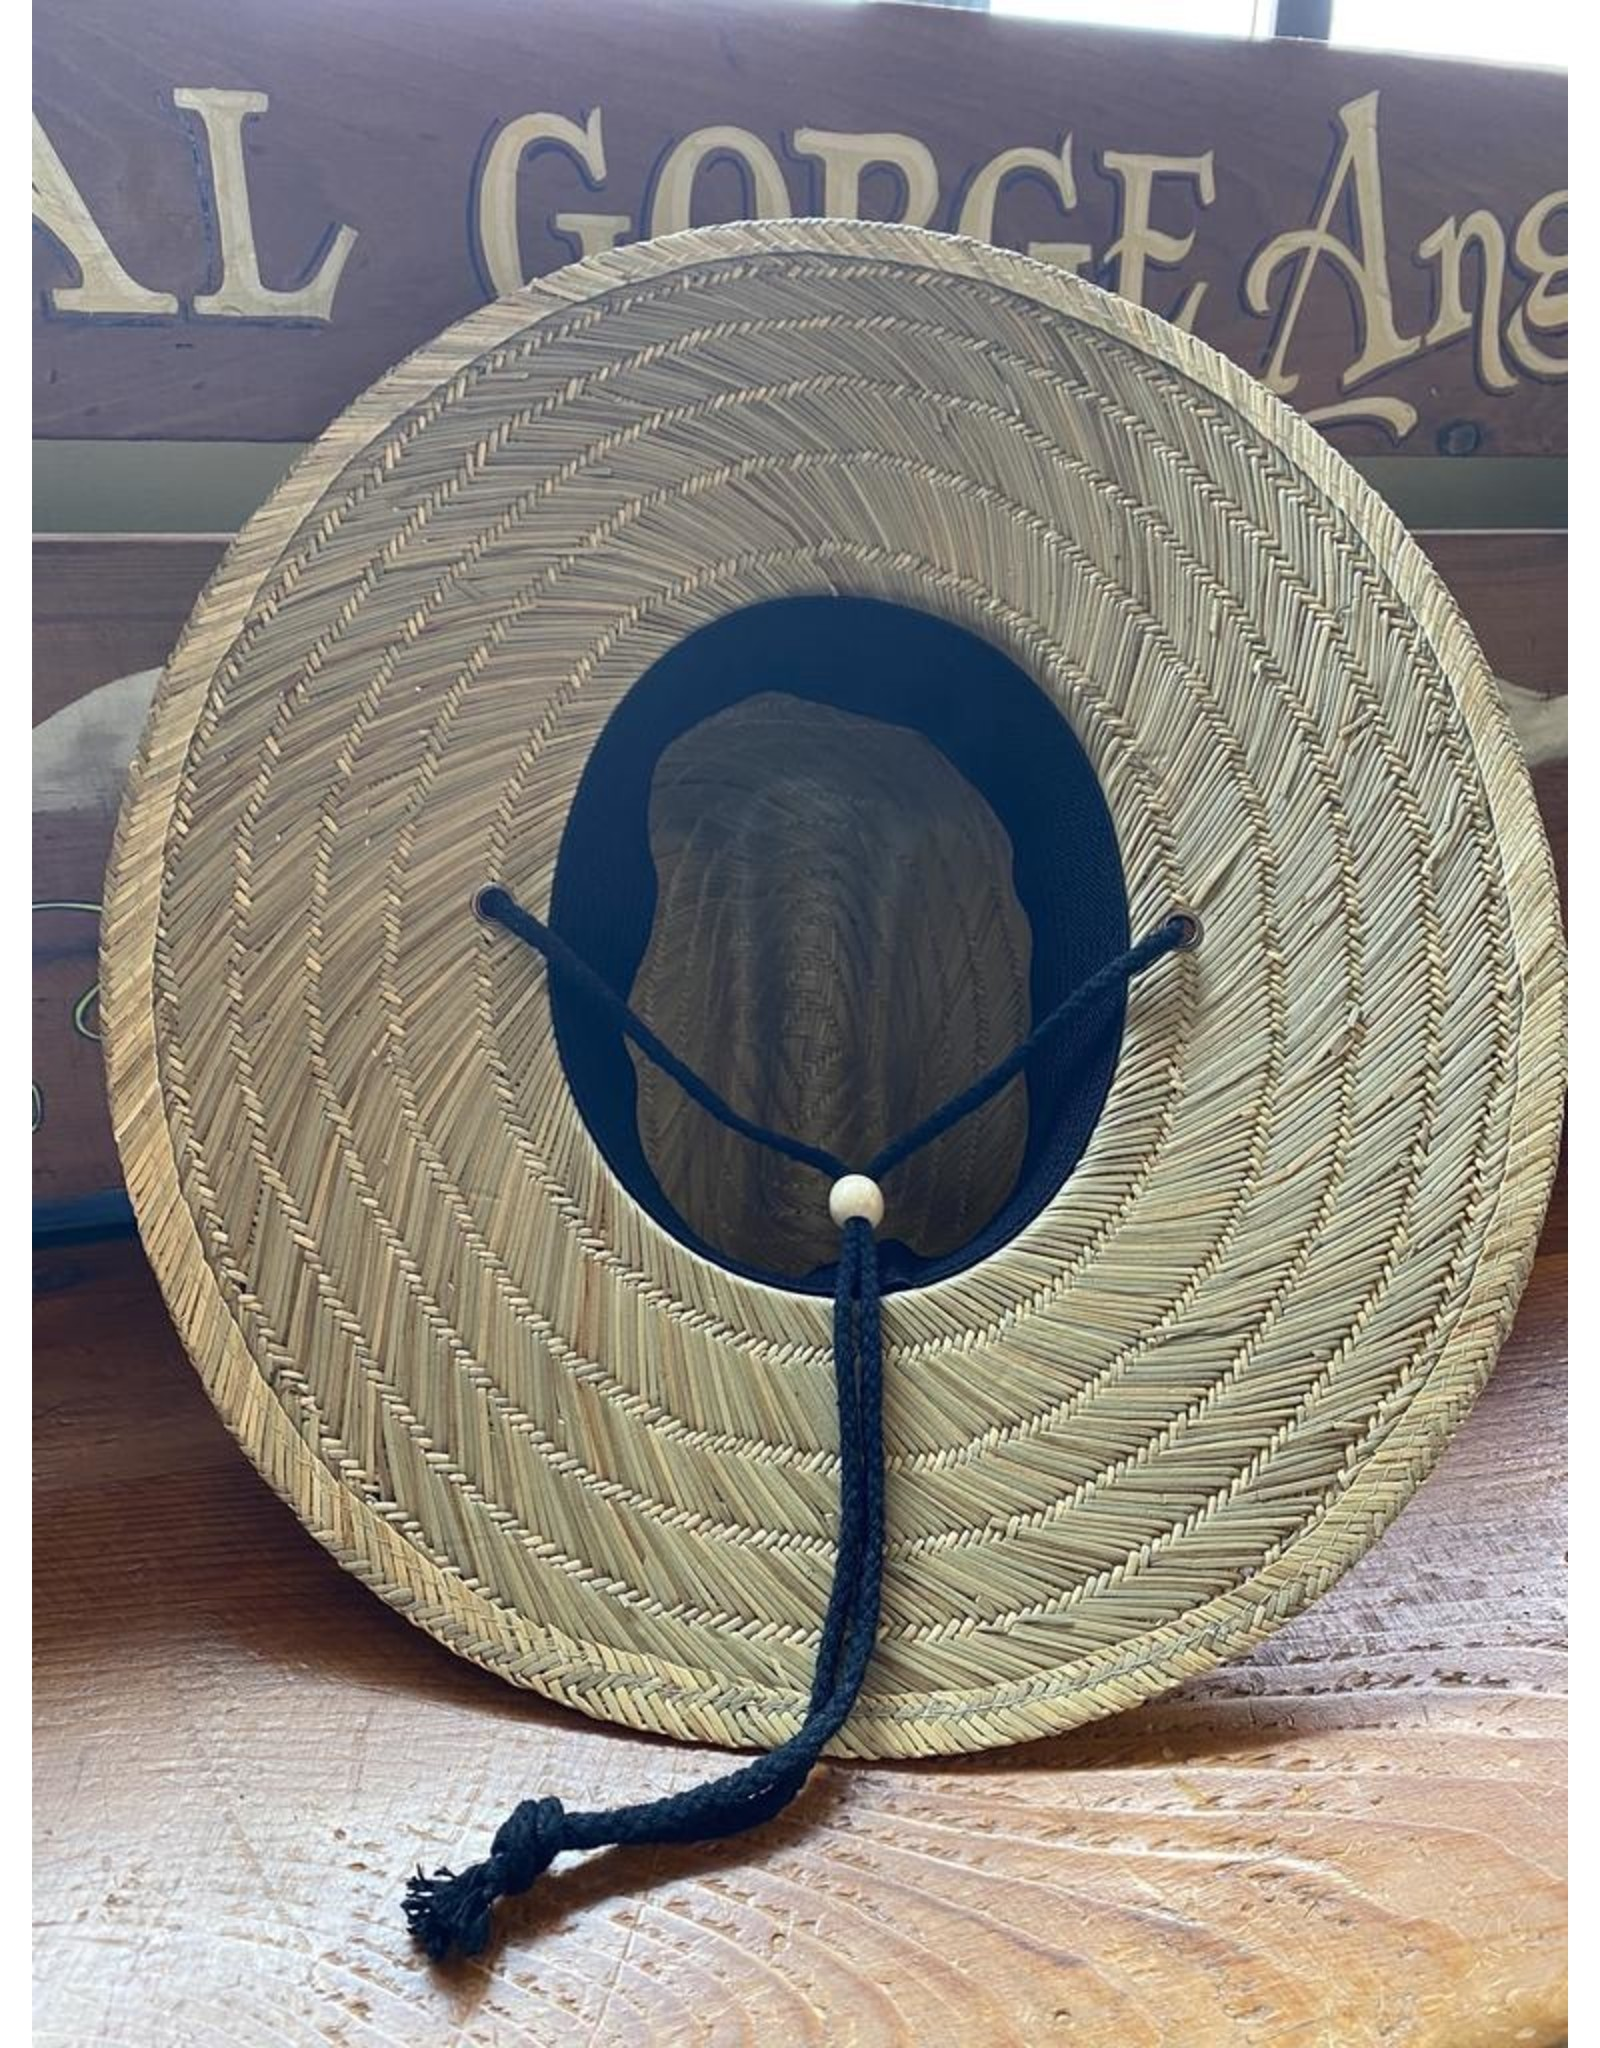 The Coolest straw Hat you've ever seen!